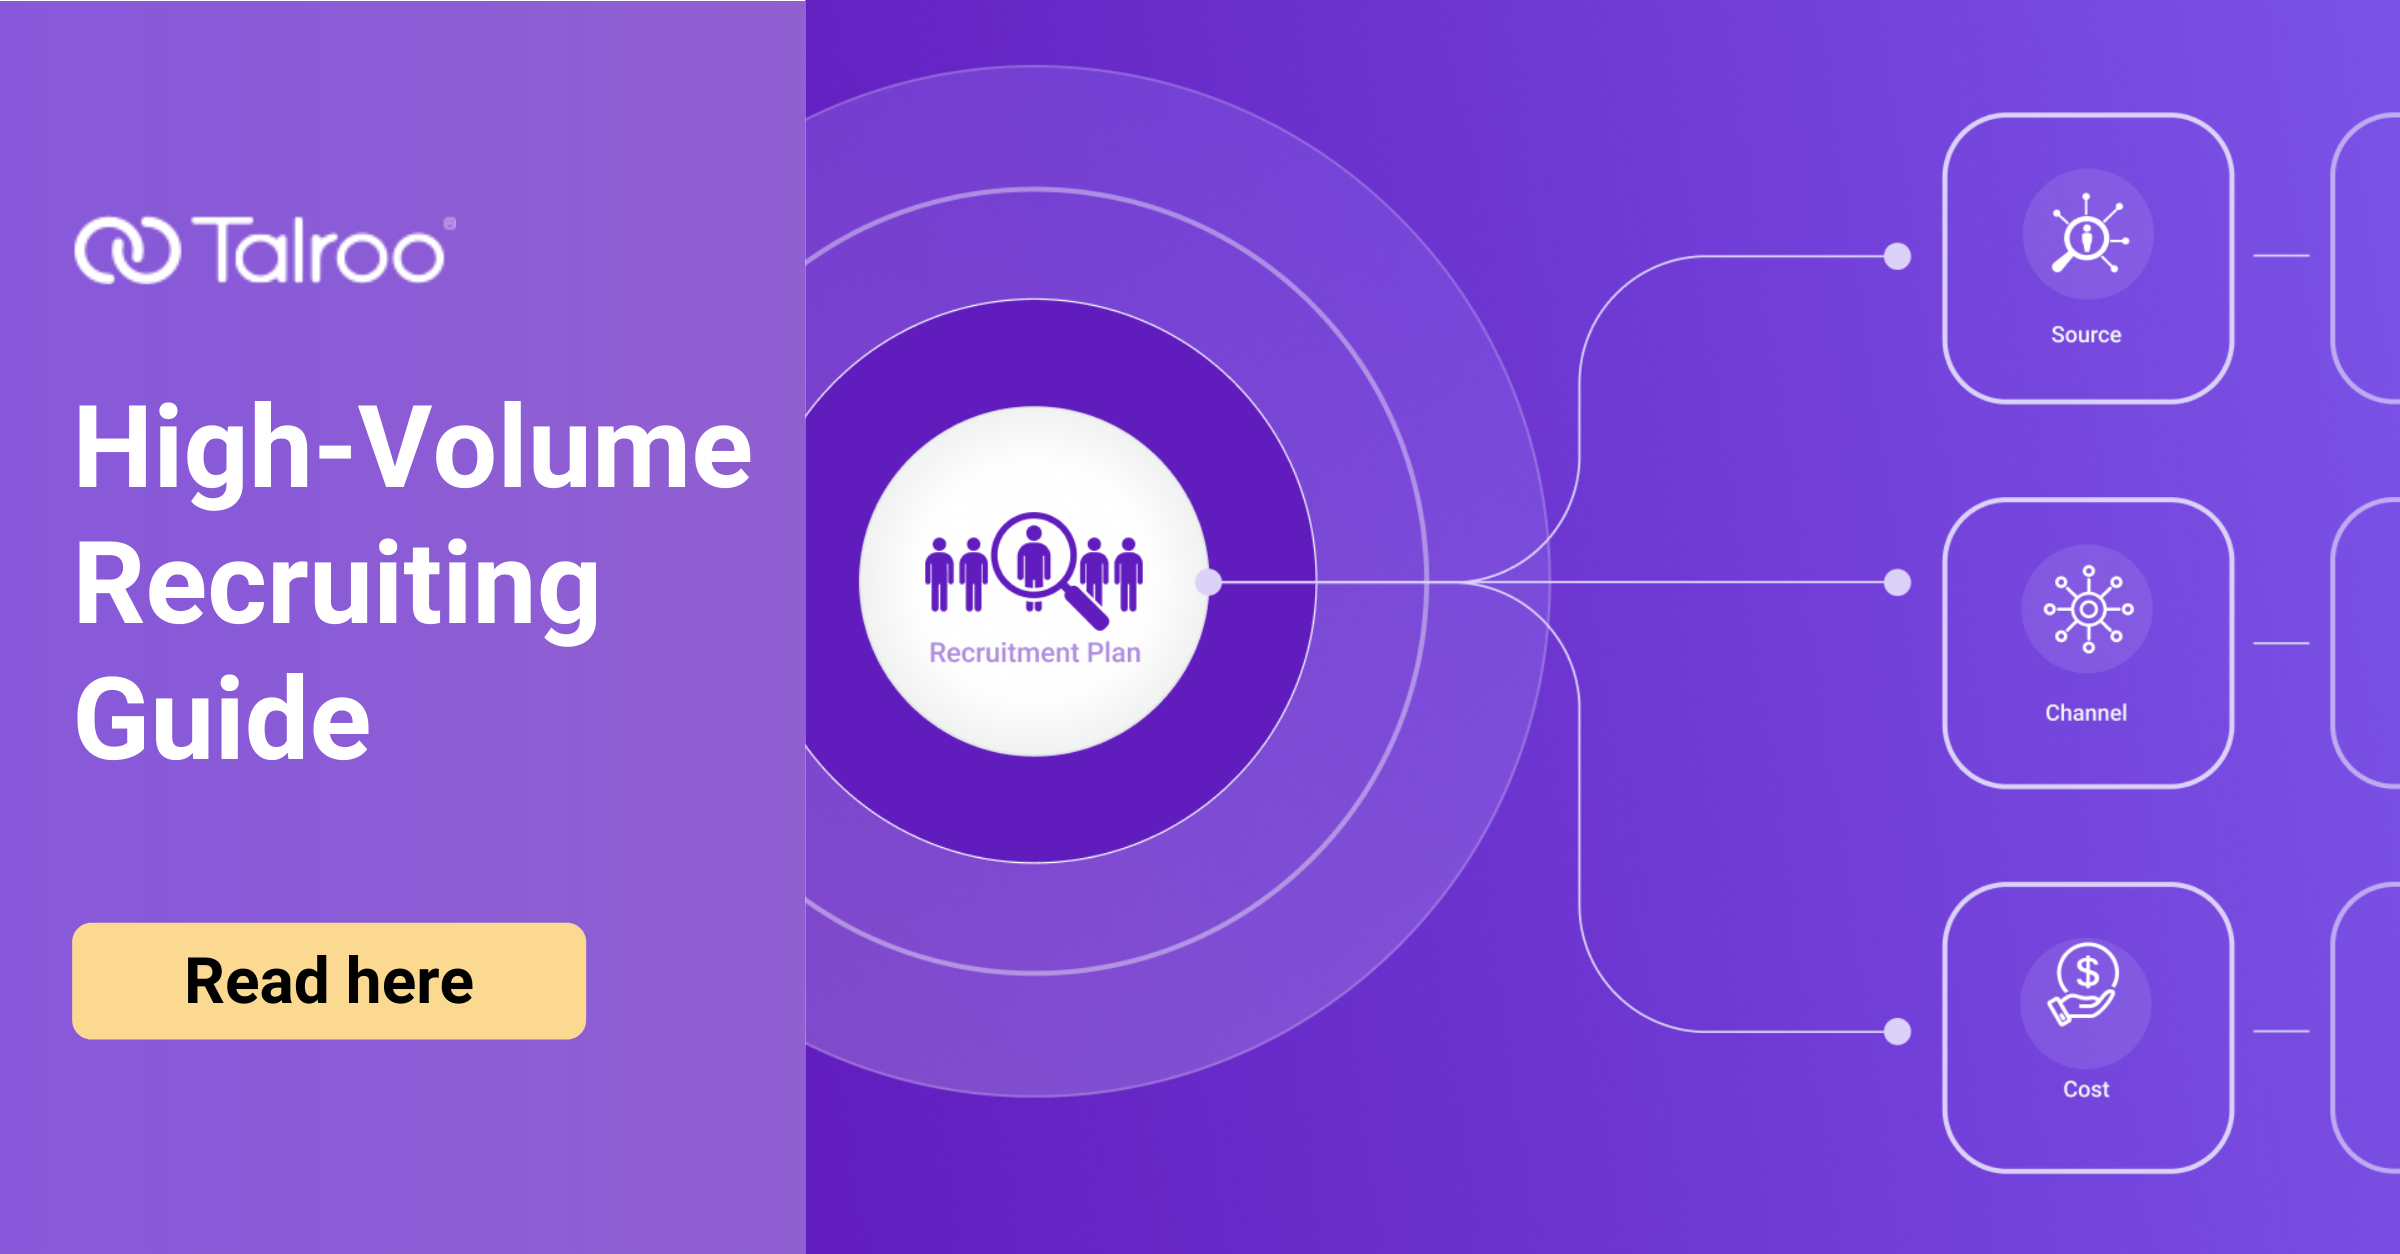 Read Talroo's comprehensive High-Volume Recruiting Guide